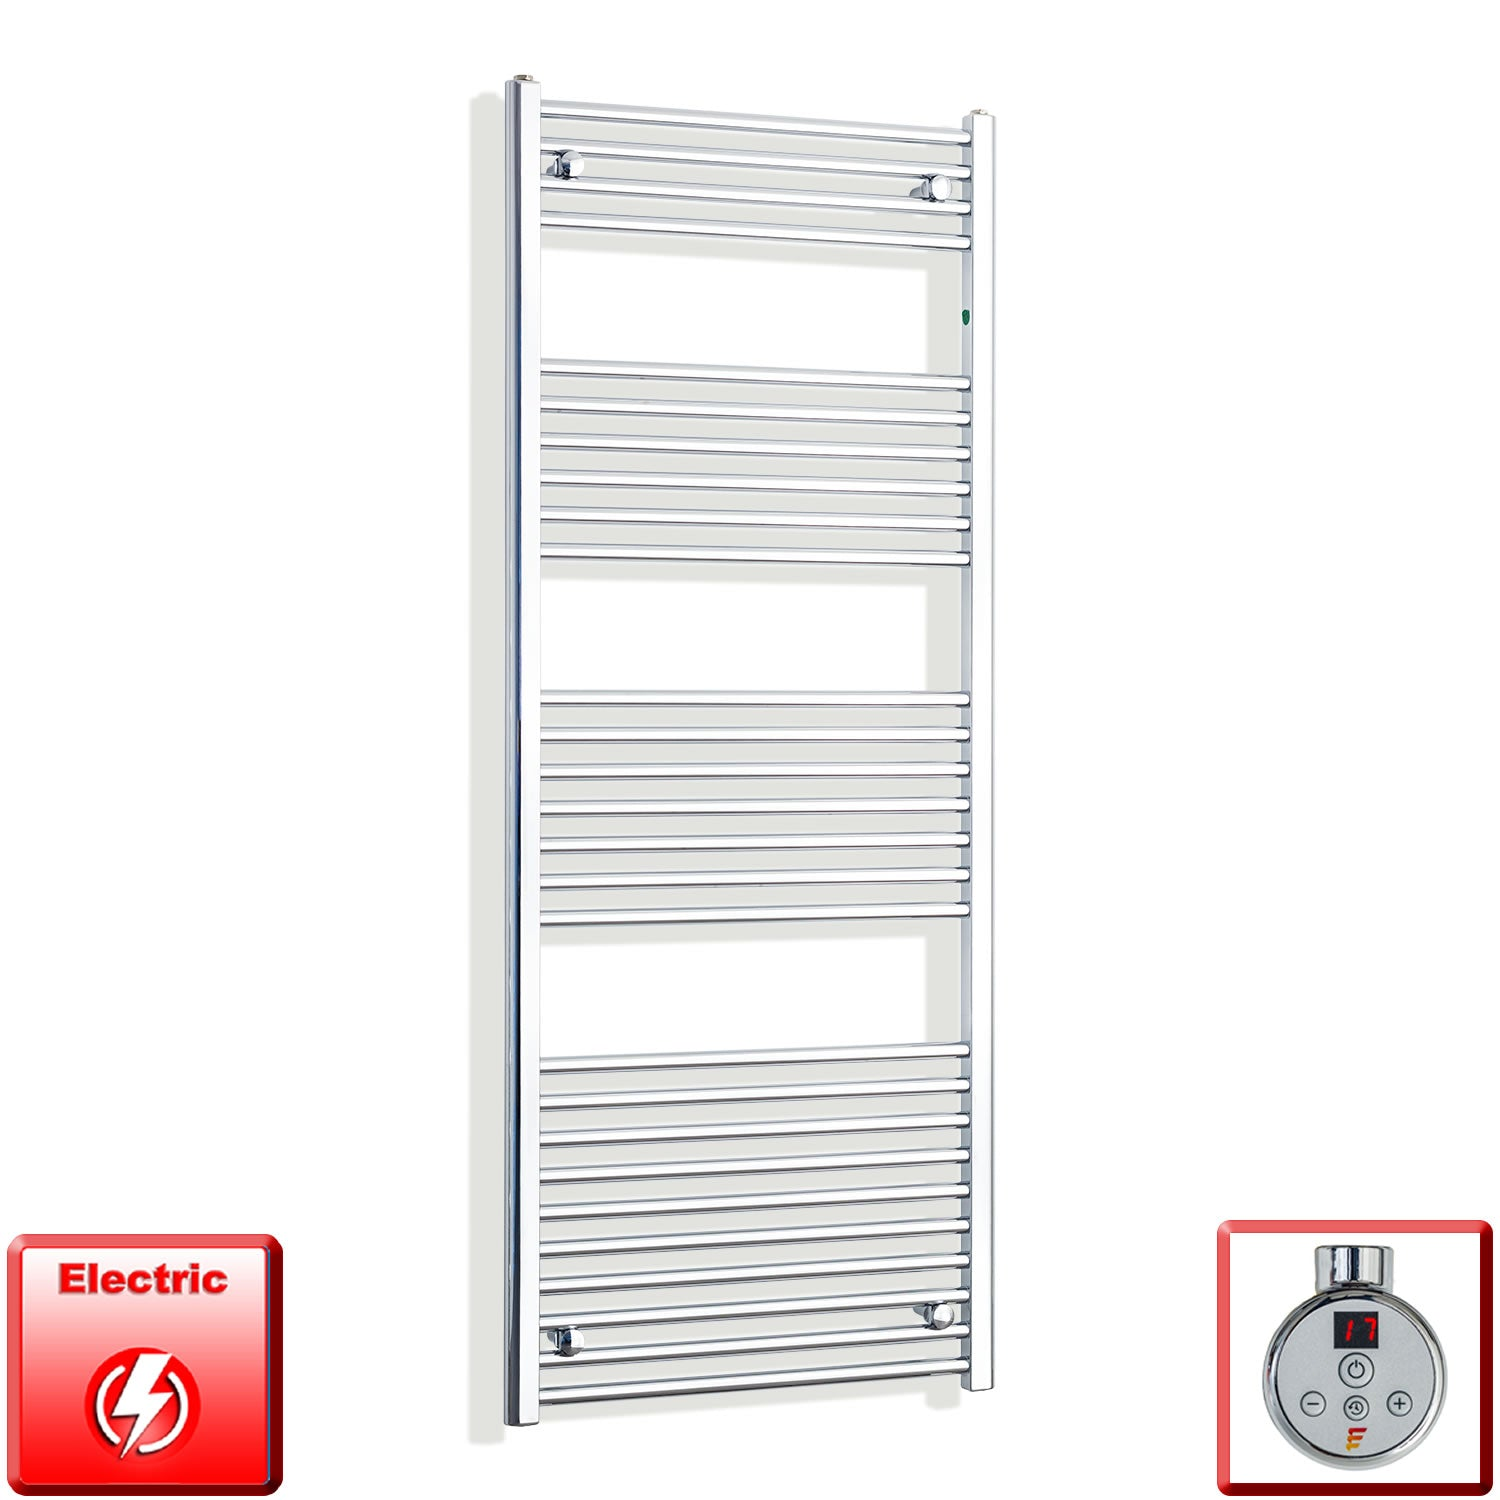 600mm Wide 1600mm High Pre-Filled Chrome Electric Towel Rail Radiator With Thermostatic DIGI Element